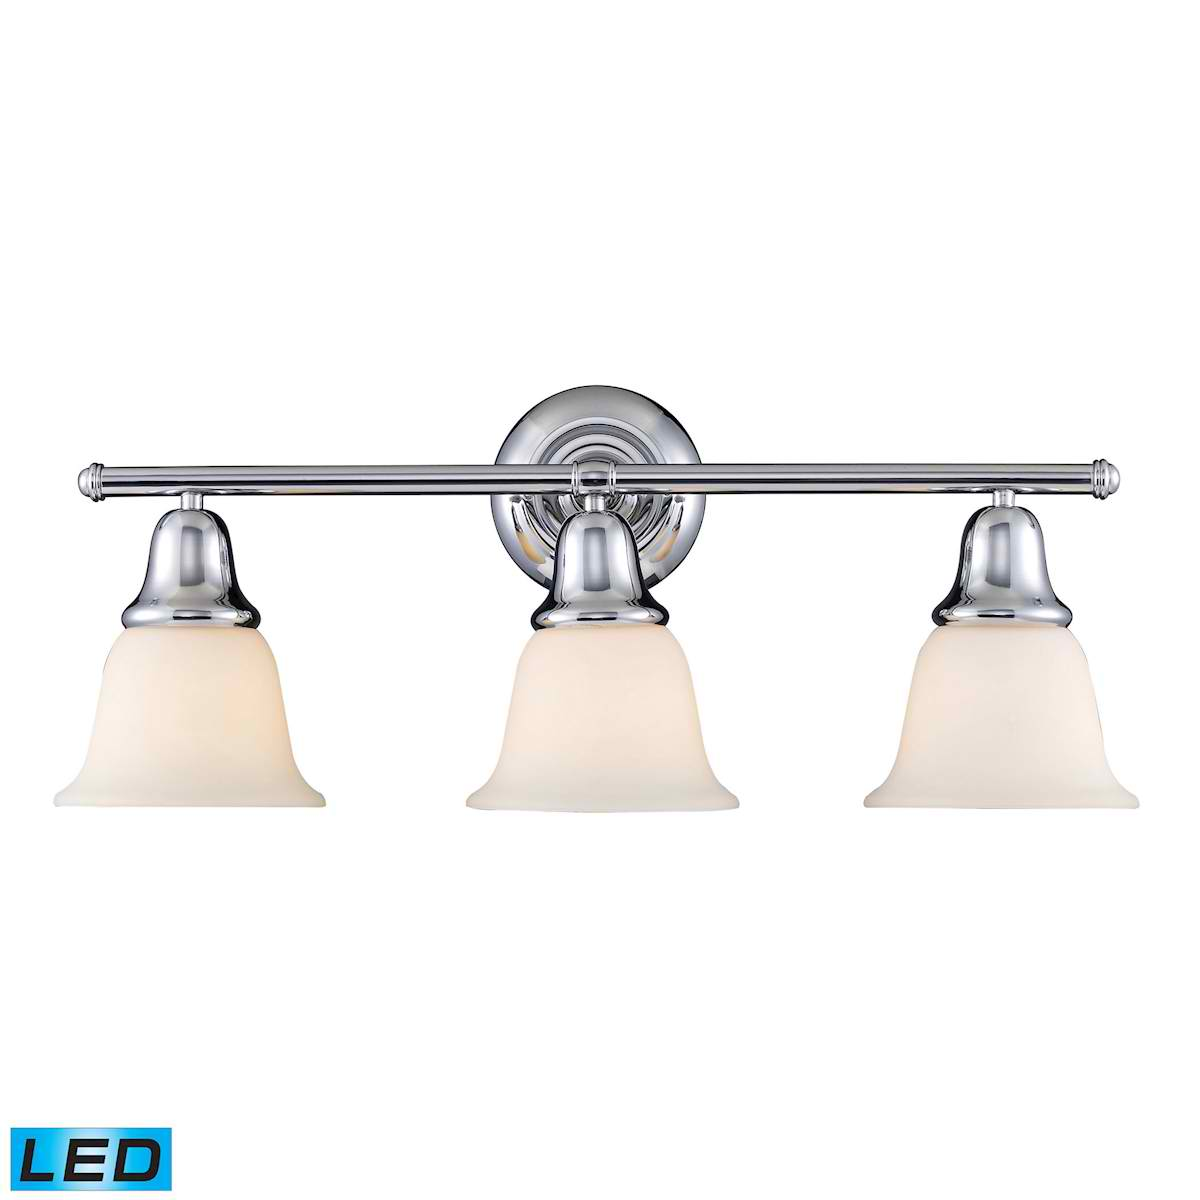 Berwick 3-Light Vanity in Polished Chrome - LED, 800 Lumens (2400 Lumens Total) with Full Scale Dimm